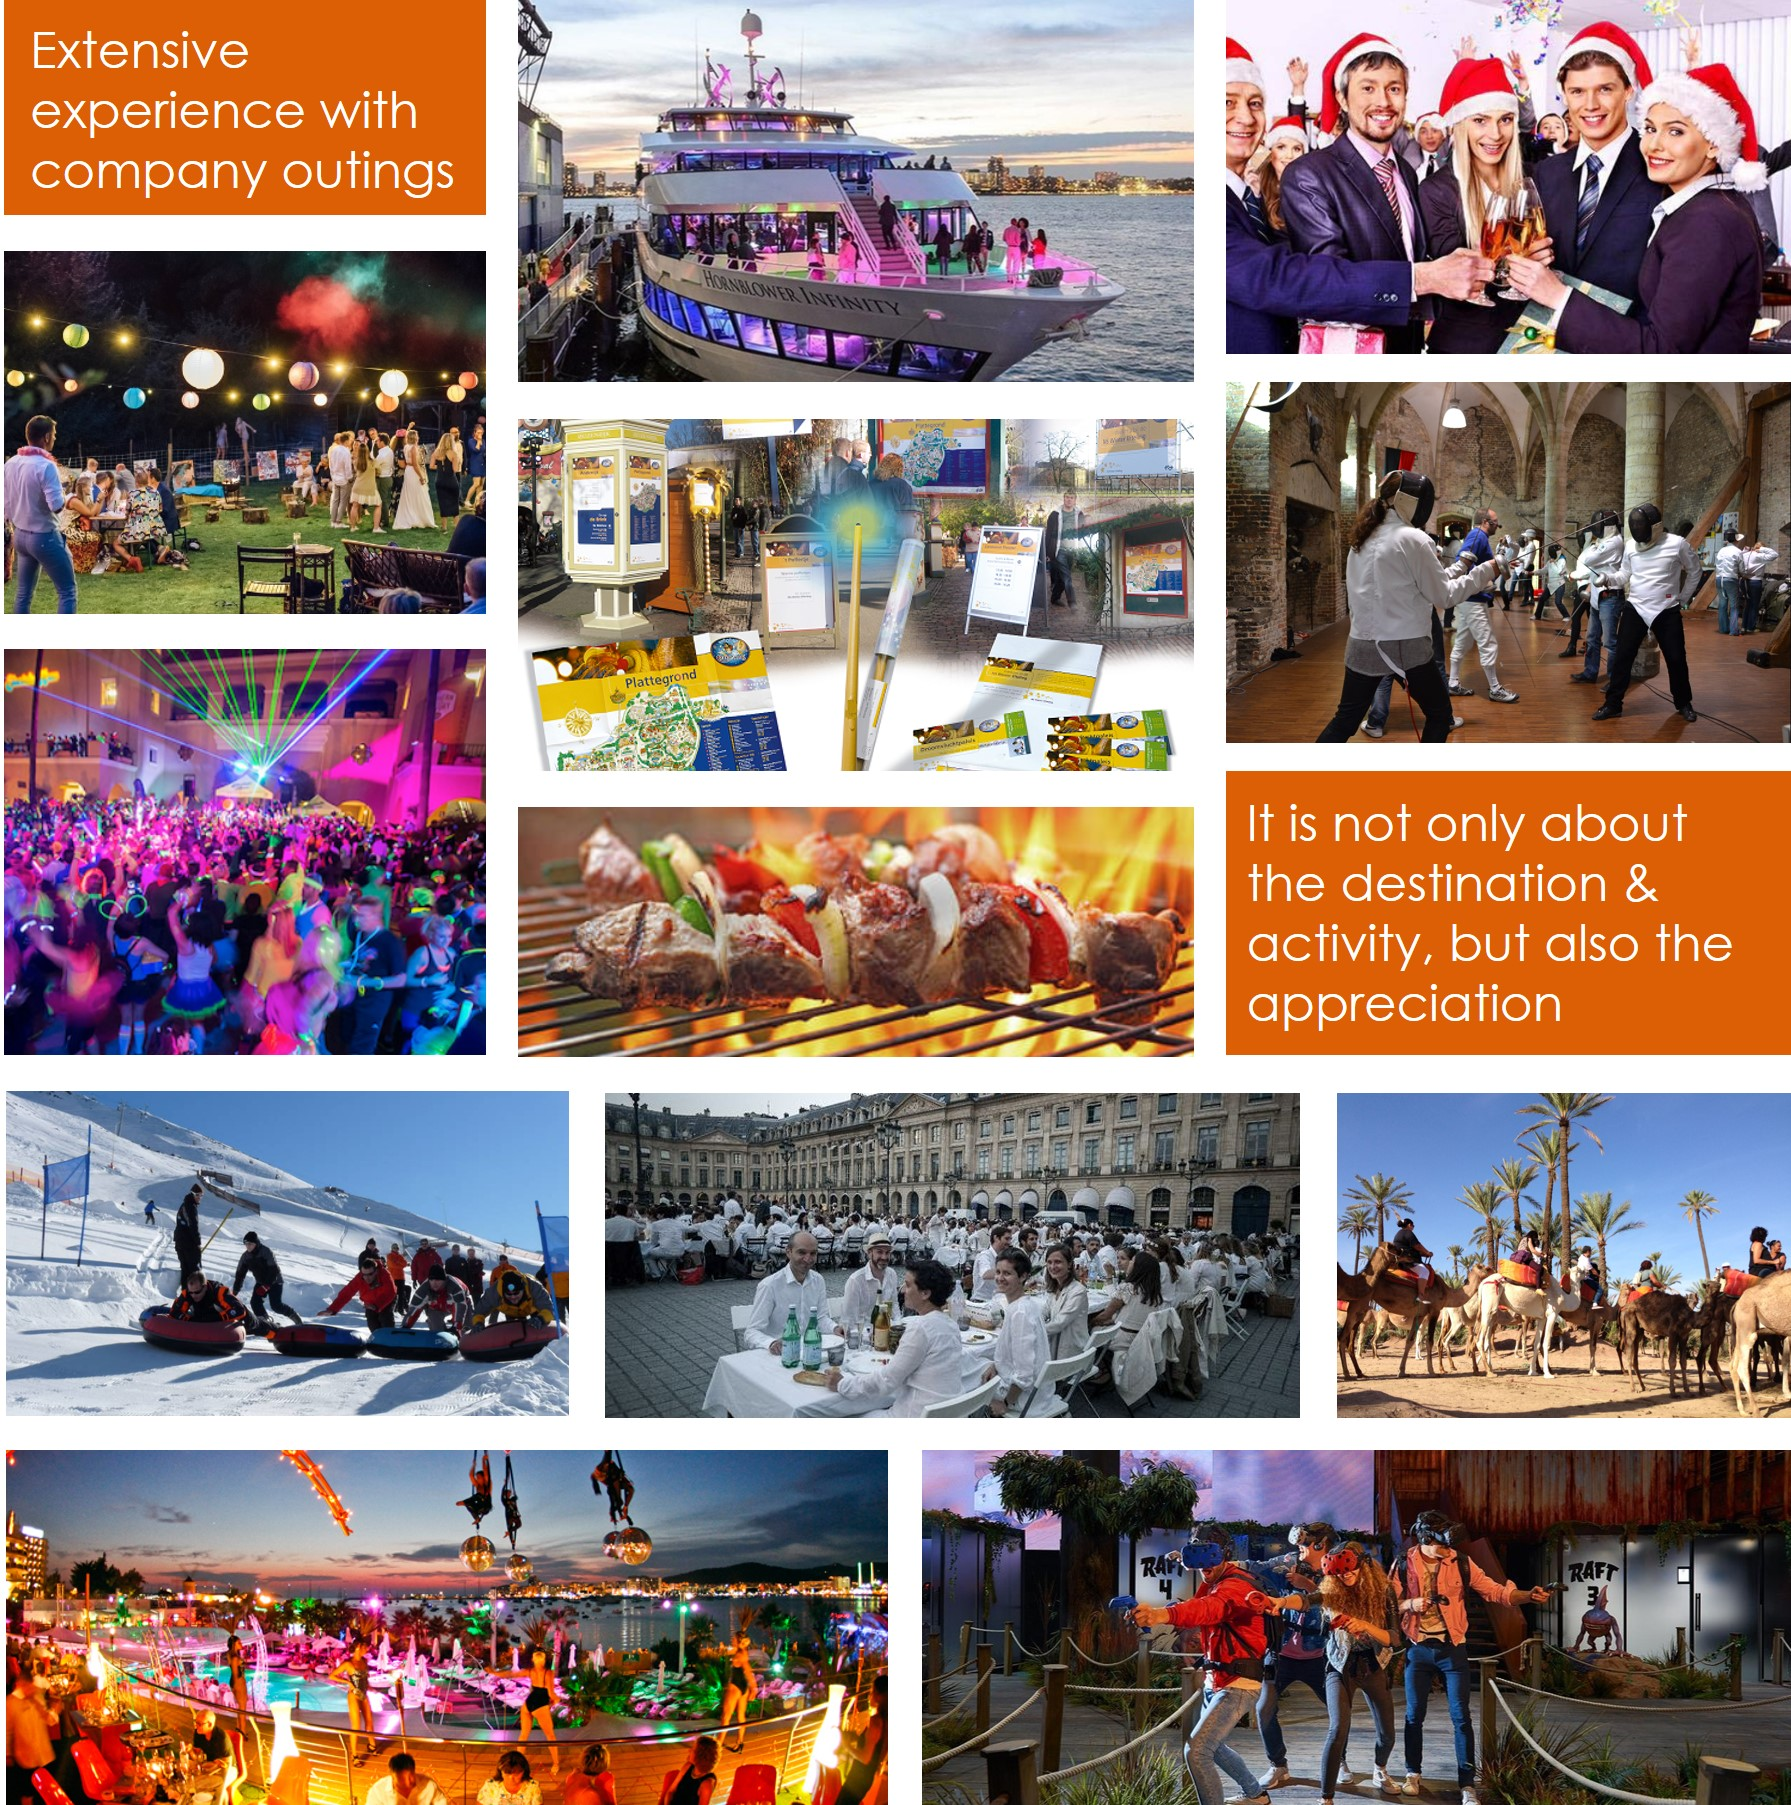 It is not only about the destination and the activity, but also about the experience and appreciation. With our years of experience in the event industry and the knowledge we have acquired, our team can help you with organising an unforgettable department outing.